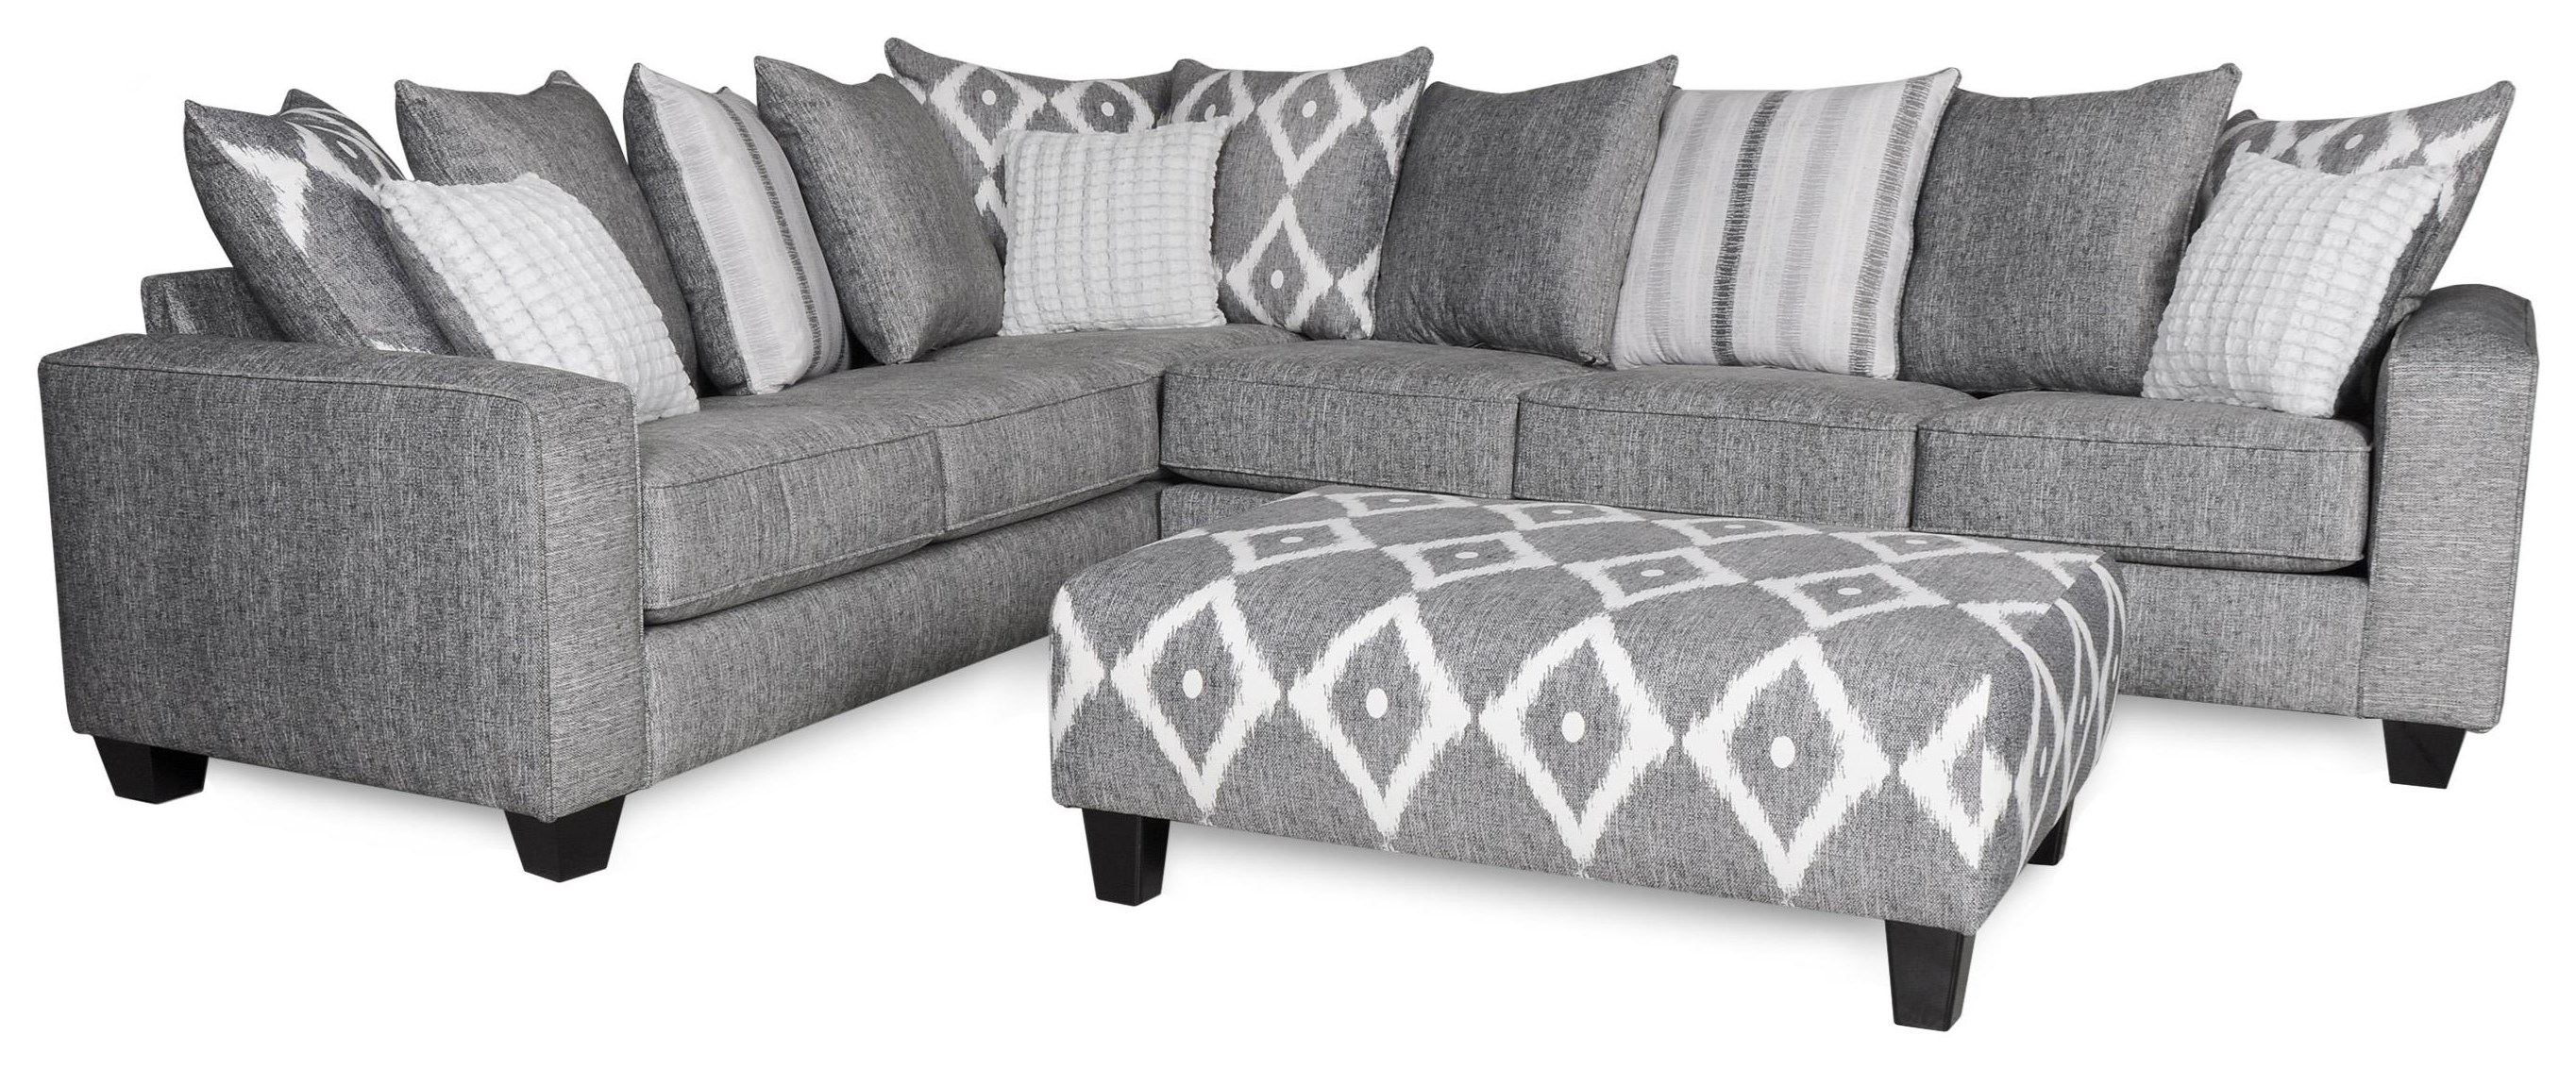 Contemporary 2 Piece Sectional in Gray Fabric